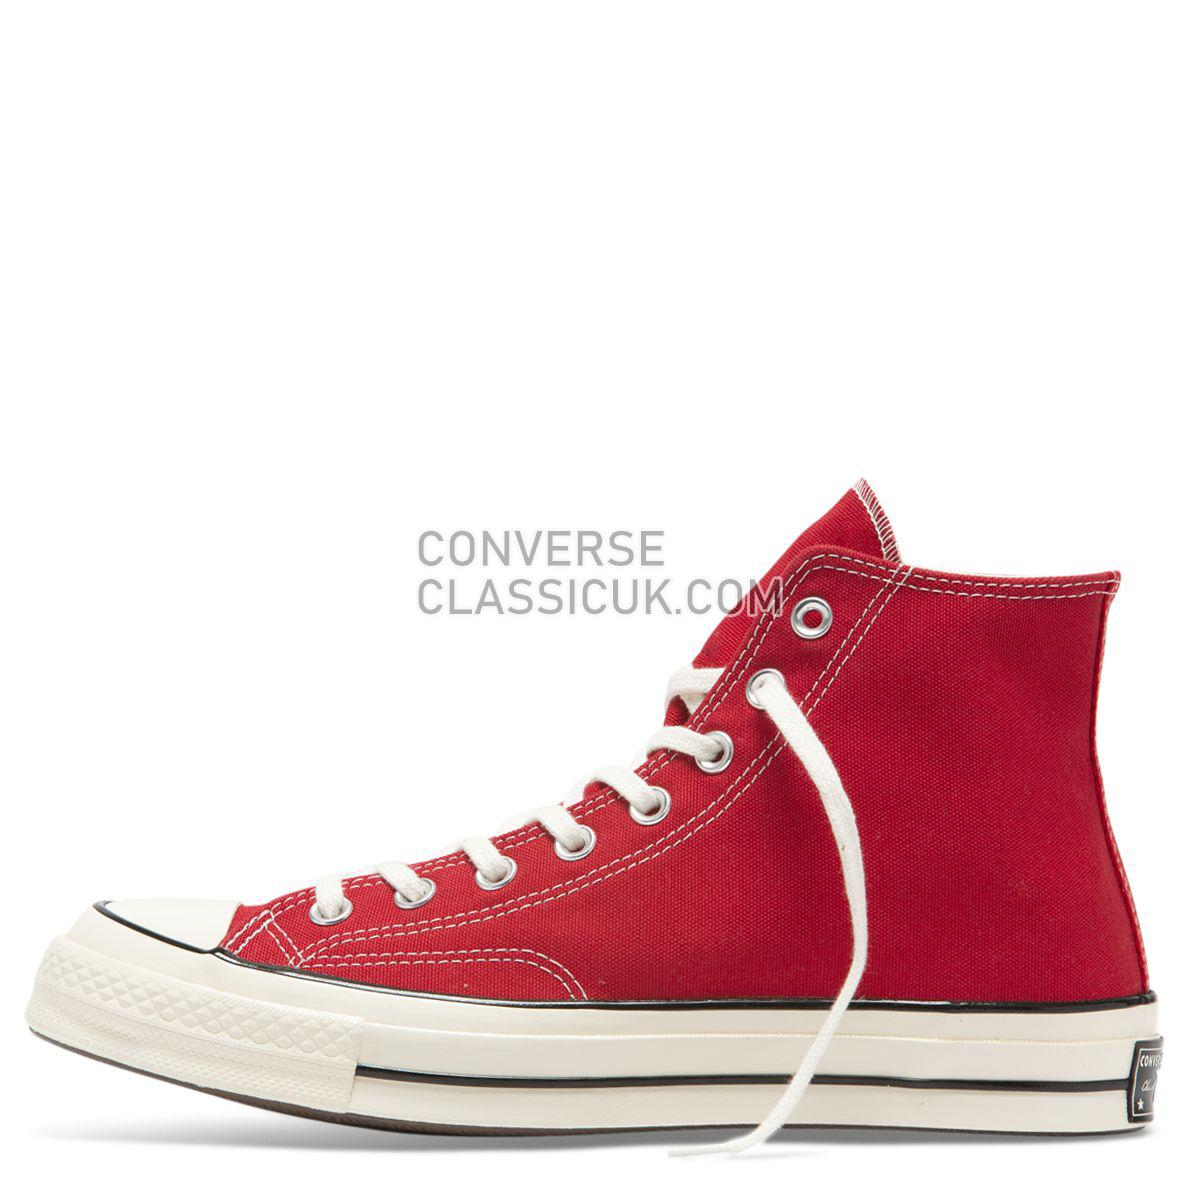 Converse Chuck Taylor All Star 70 Always On High Top Enamel Red Mens Womens Unisex 164944 Enamel Red/Egret/Black Shoes